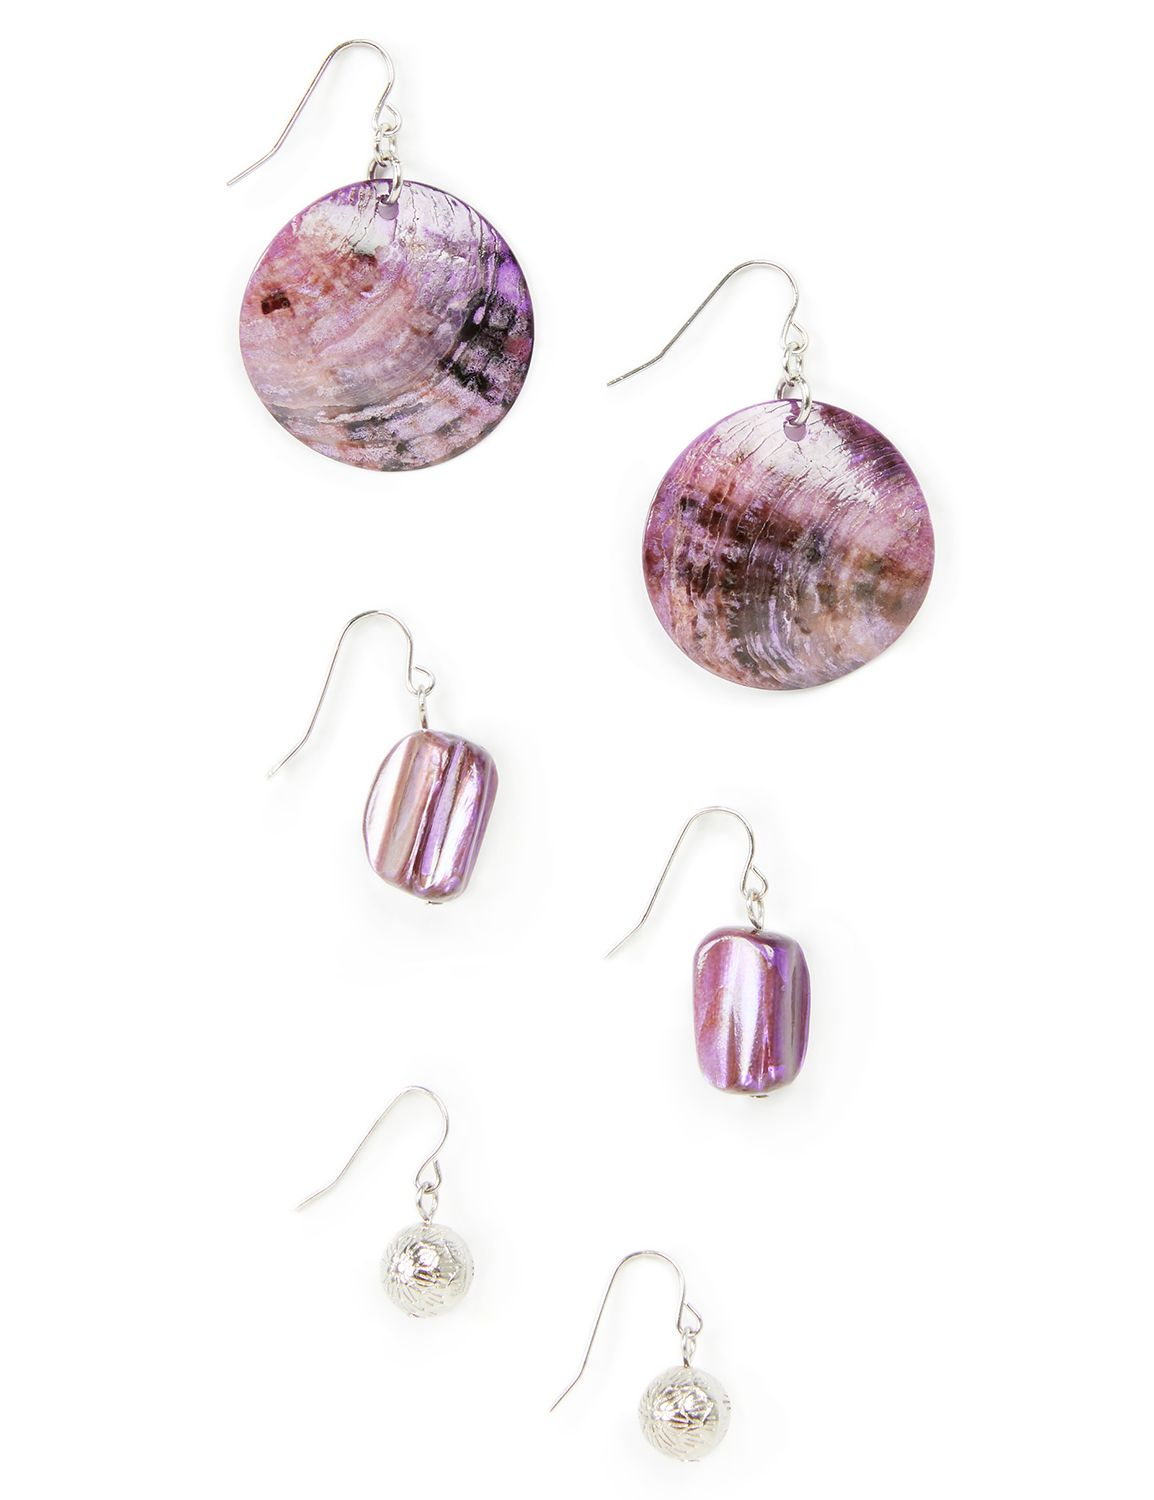 Lilac Seashell Earrings LM Shell trio PE KTE0500 MP-300099924